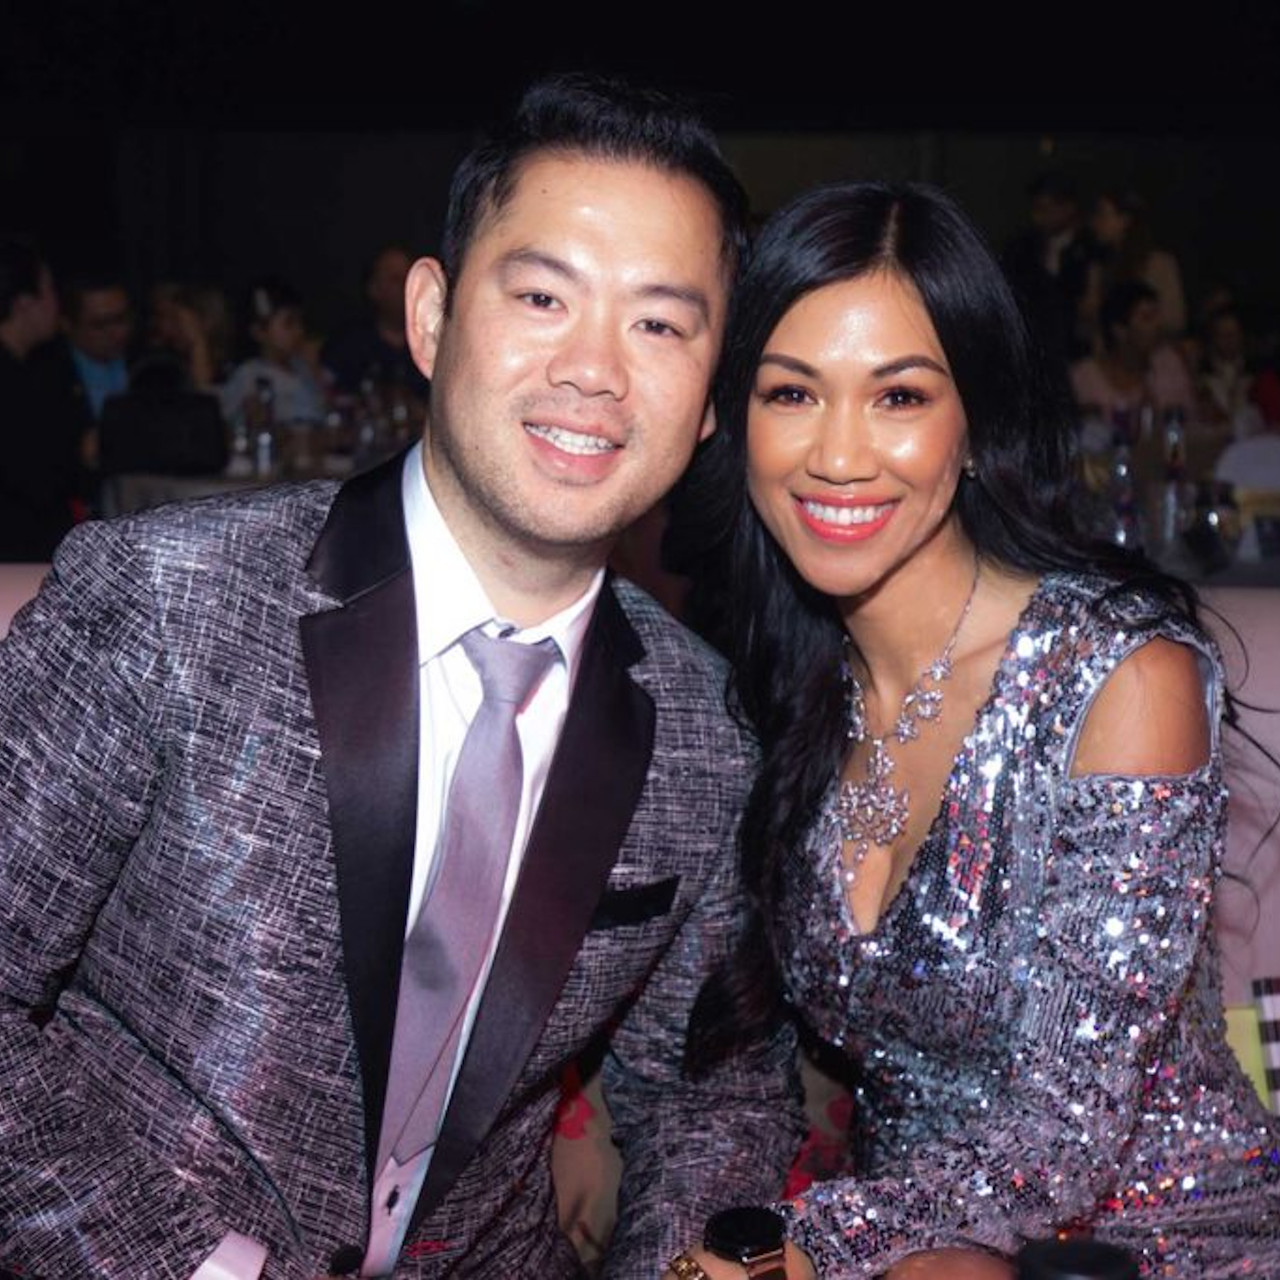 #1 Ranked MLM Millennial Couple, Chad And Nattida Chong, Lead The Field